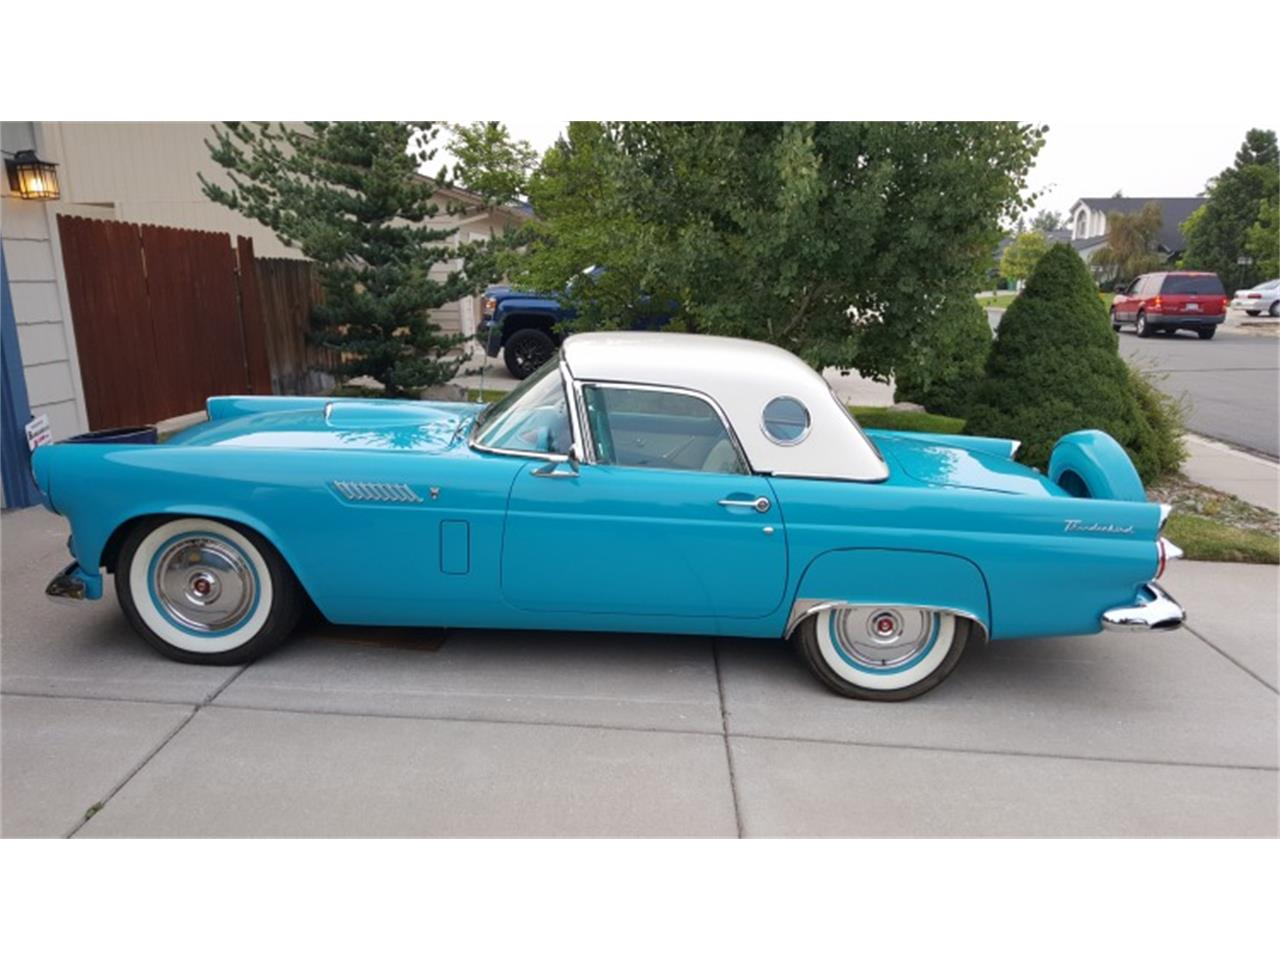 Large picture of 56 ford thunderbird located in nevada auction vehicle offered by motorsport auction